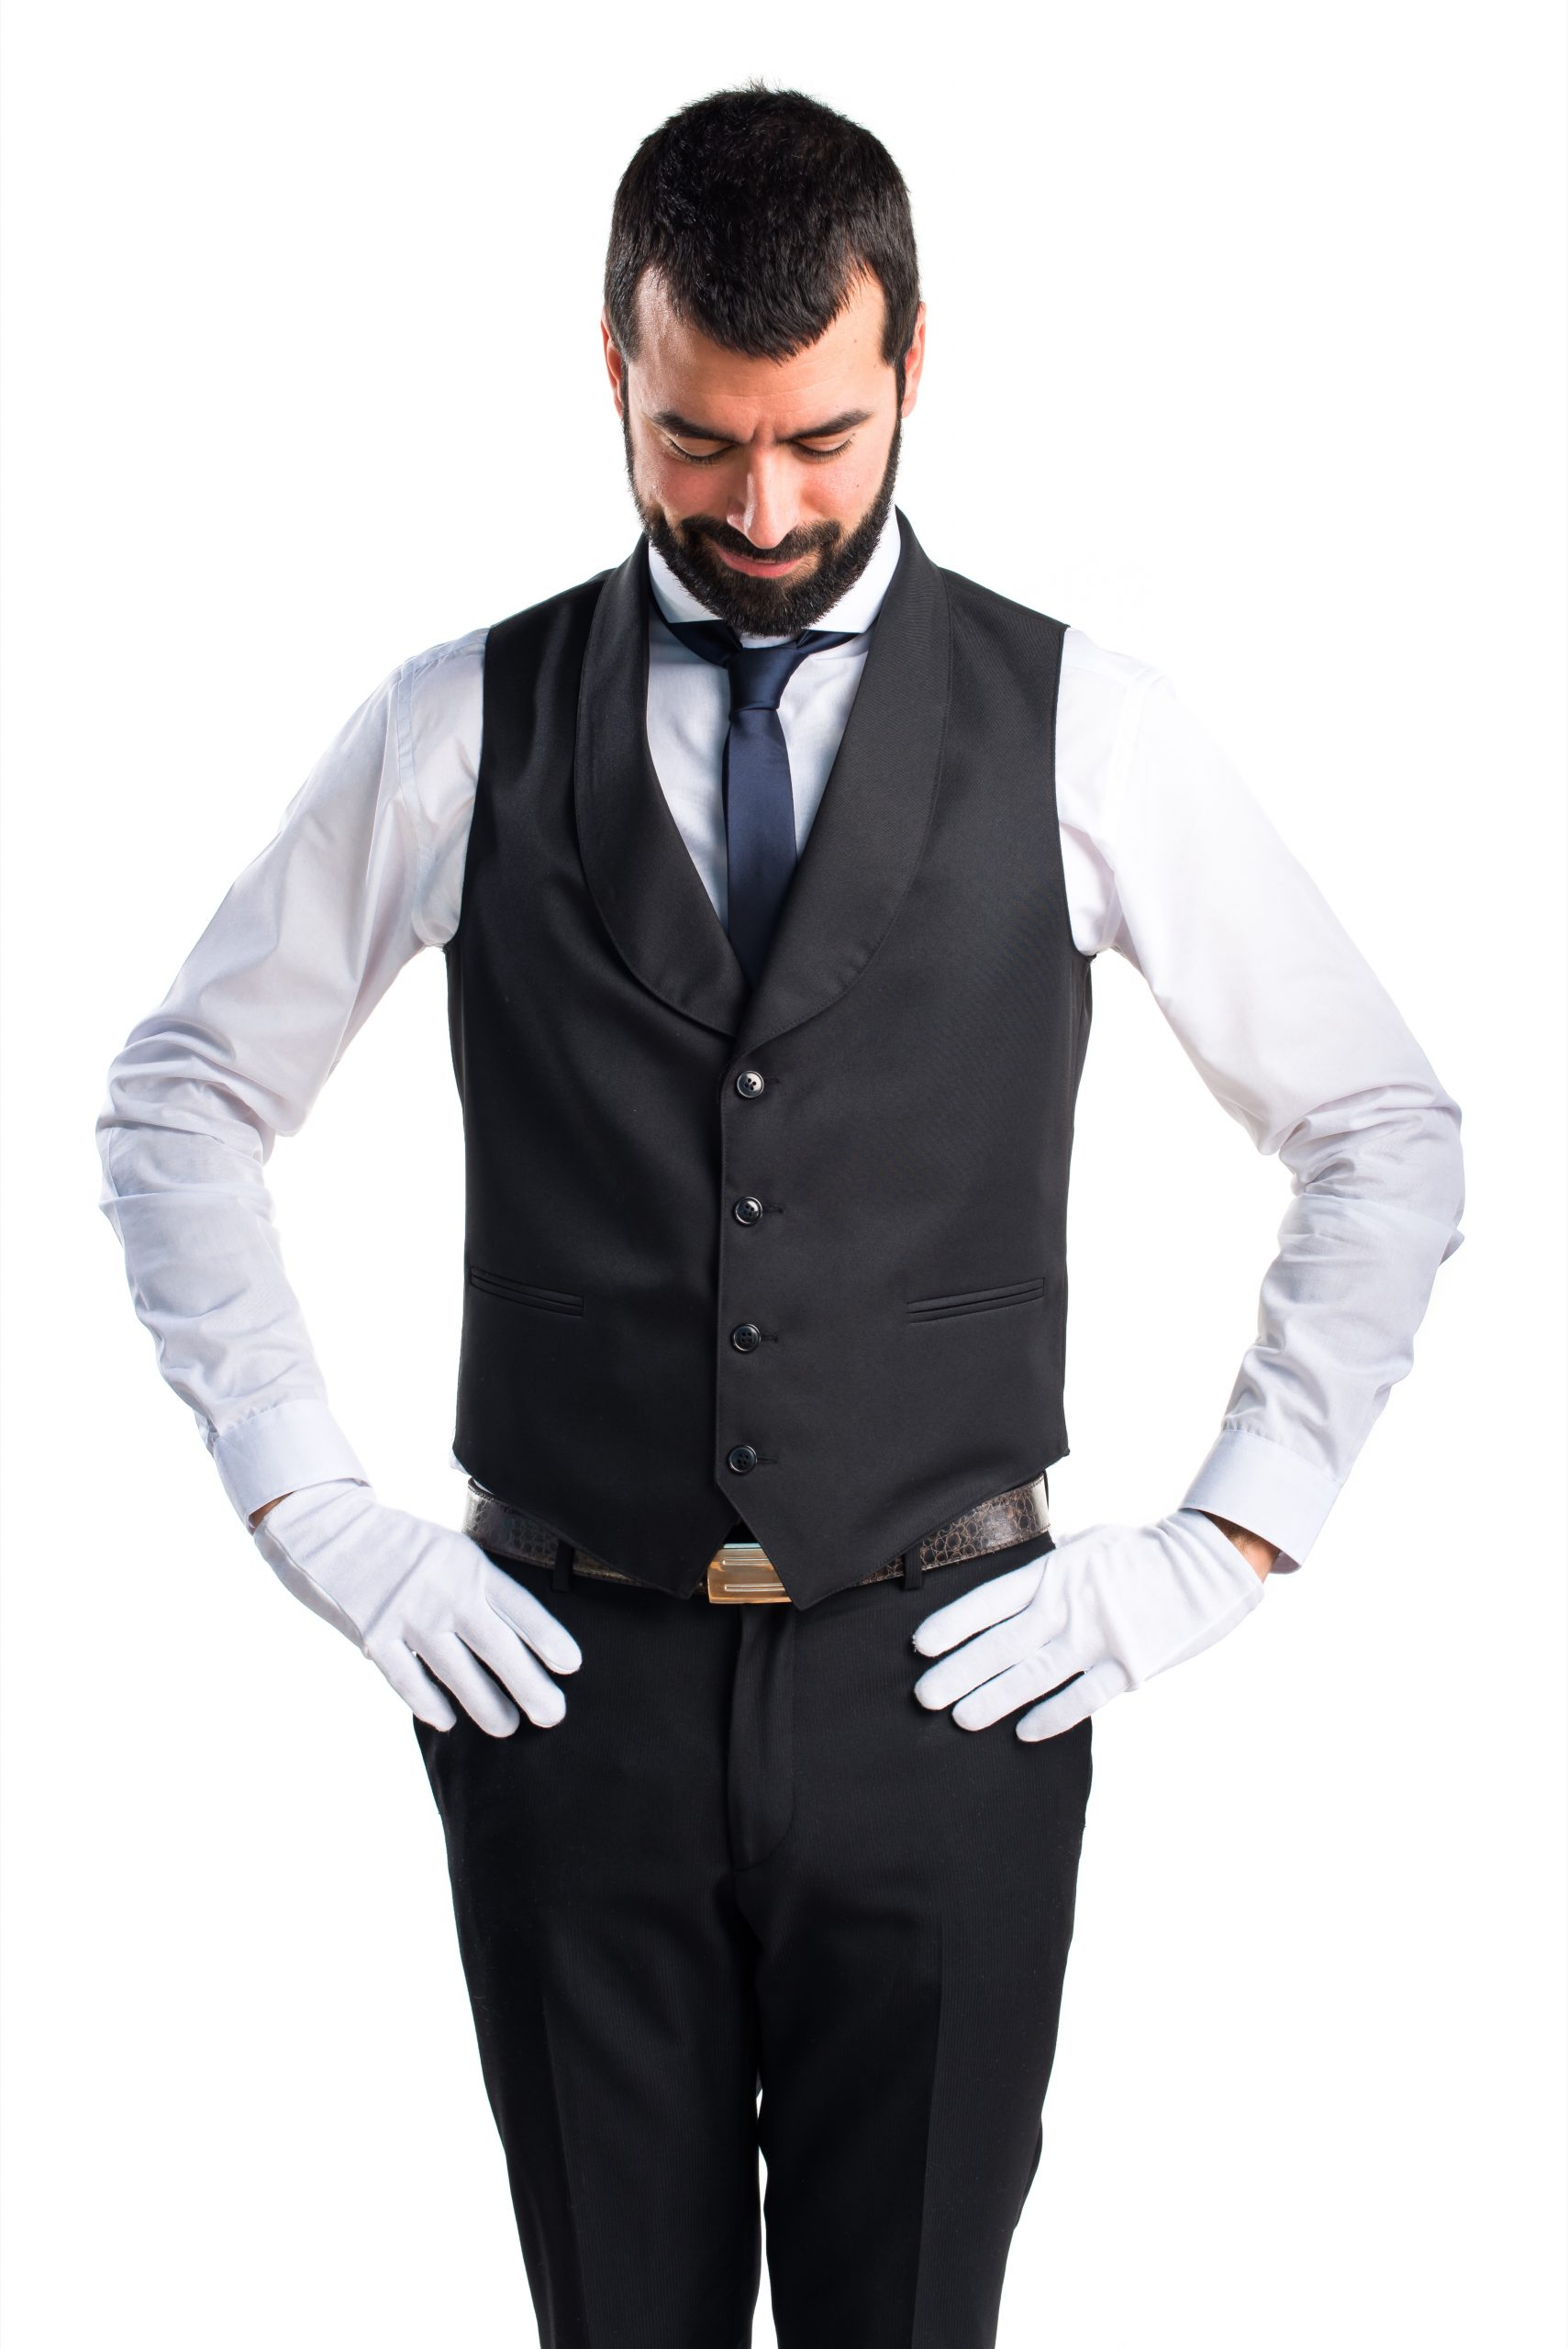 Luxury waiter looking down